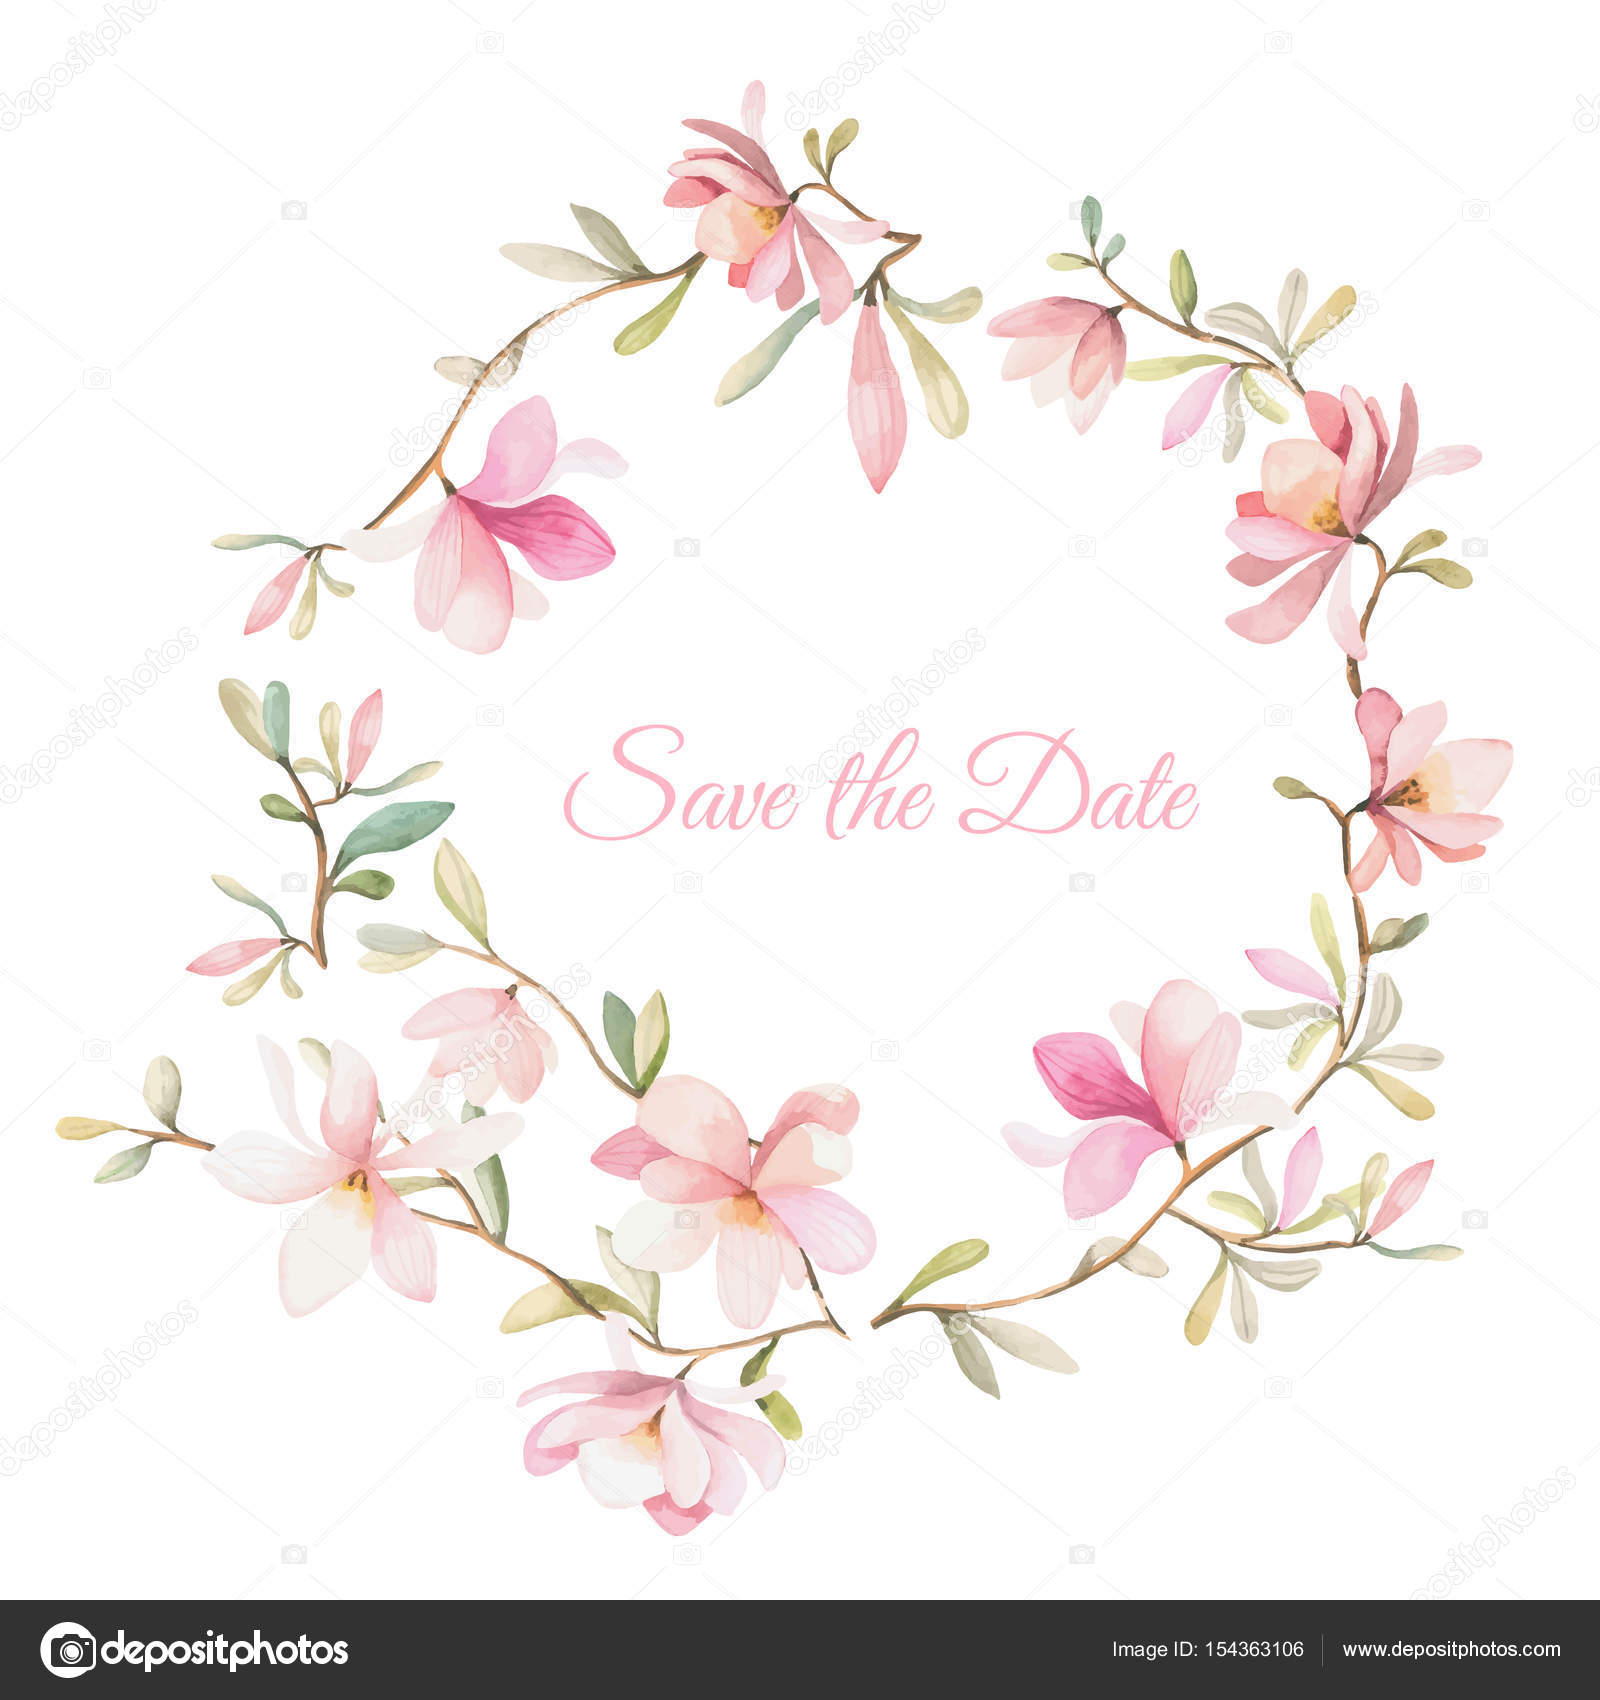 Wreath Of Flowers In Watercolor Style On White Background Stock